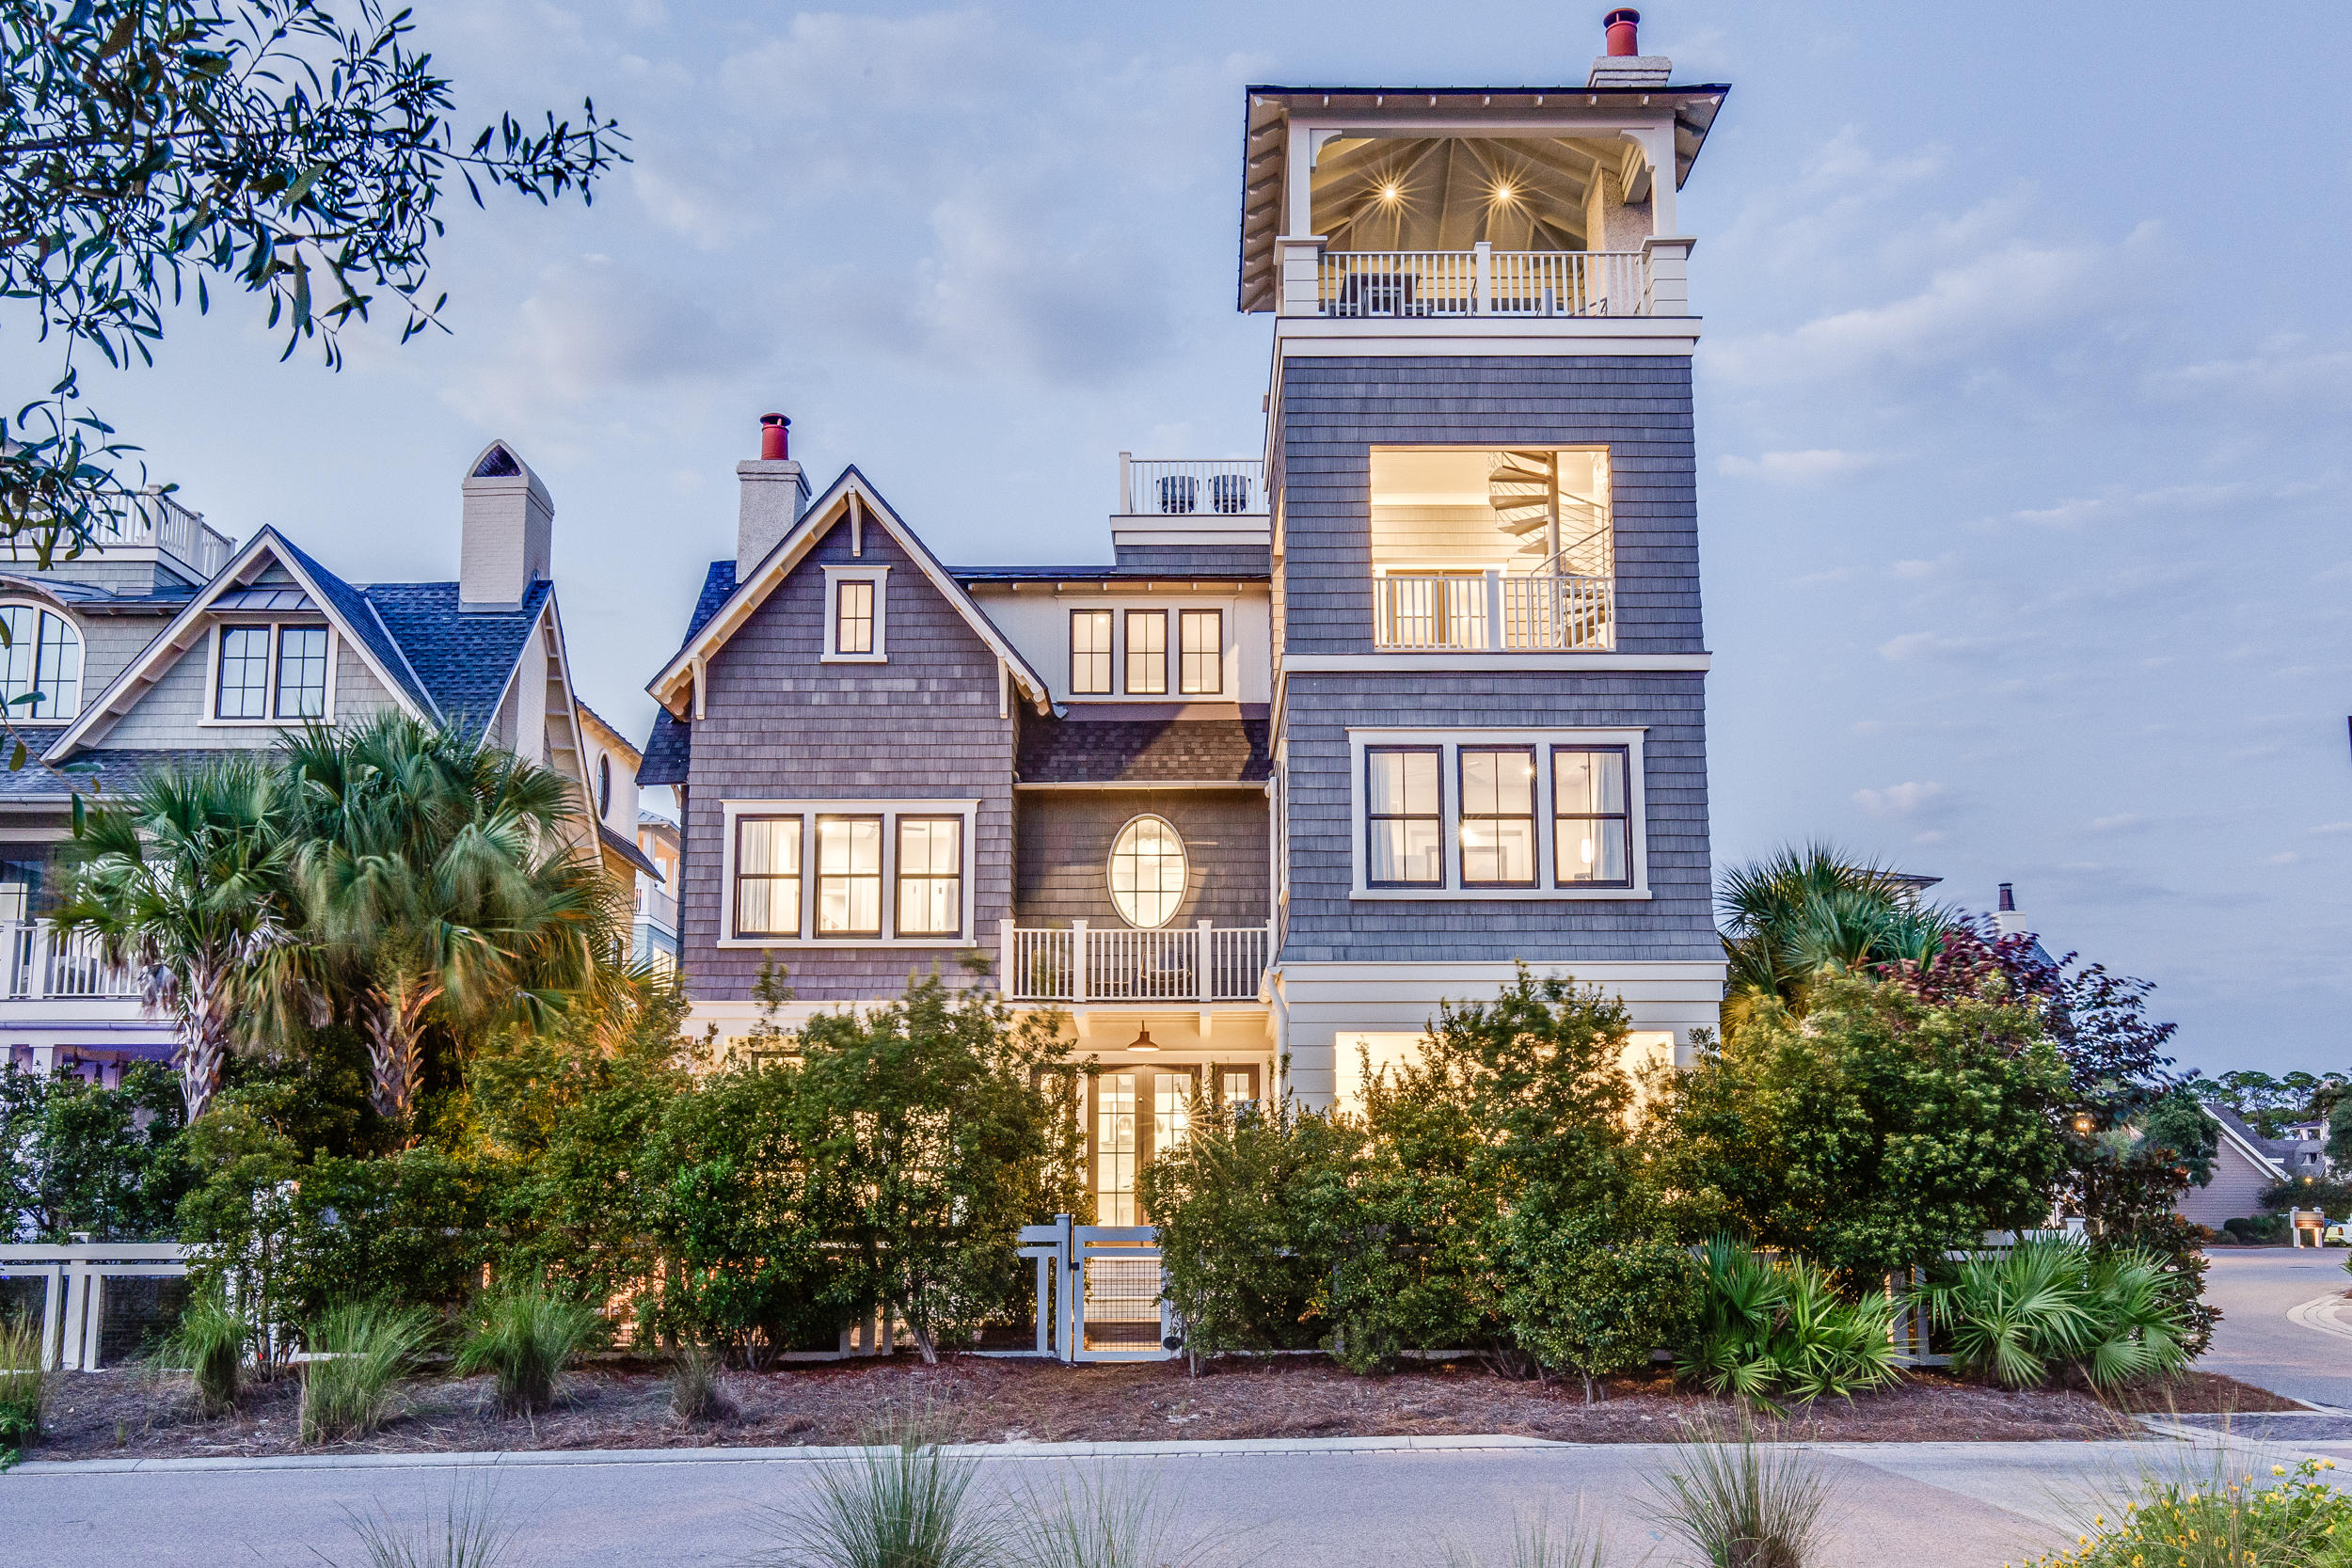 Incredible opportunity to own this Custom home in one of the best locations in WaterSound Beach. Rev